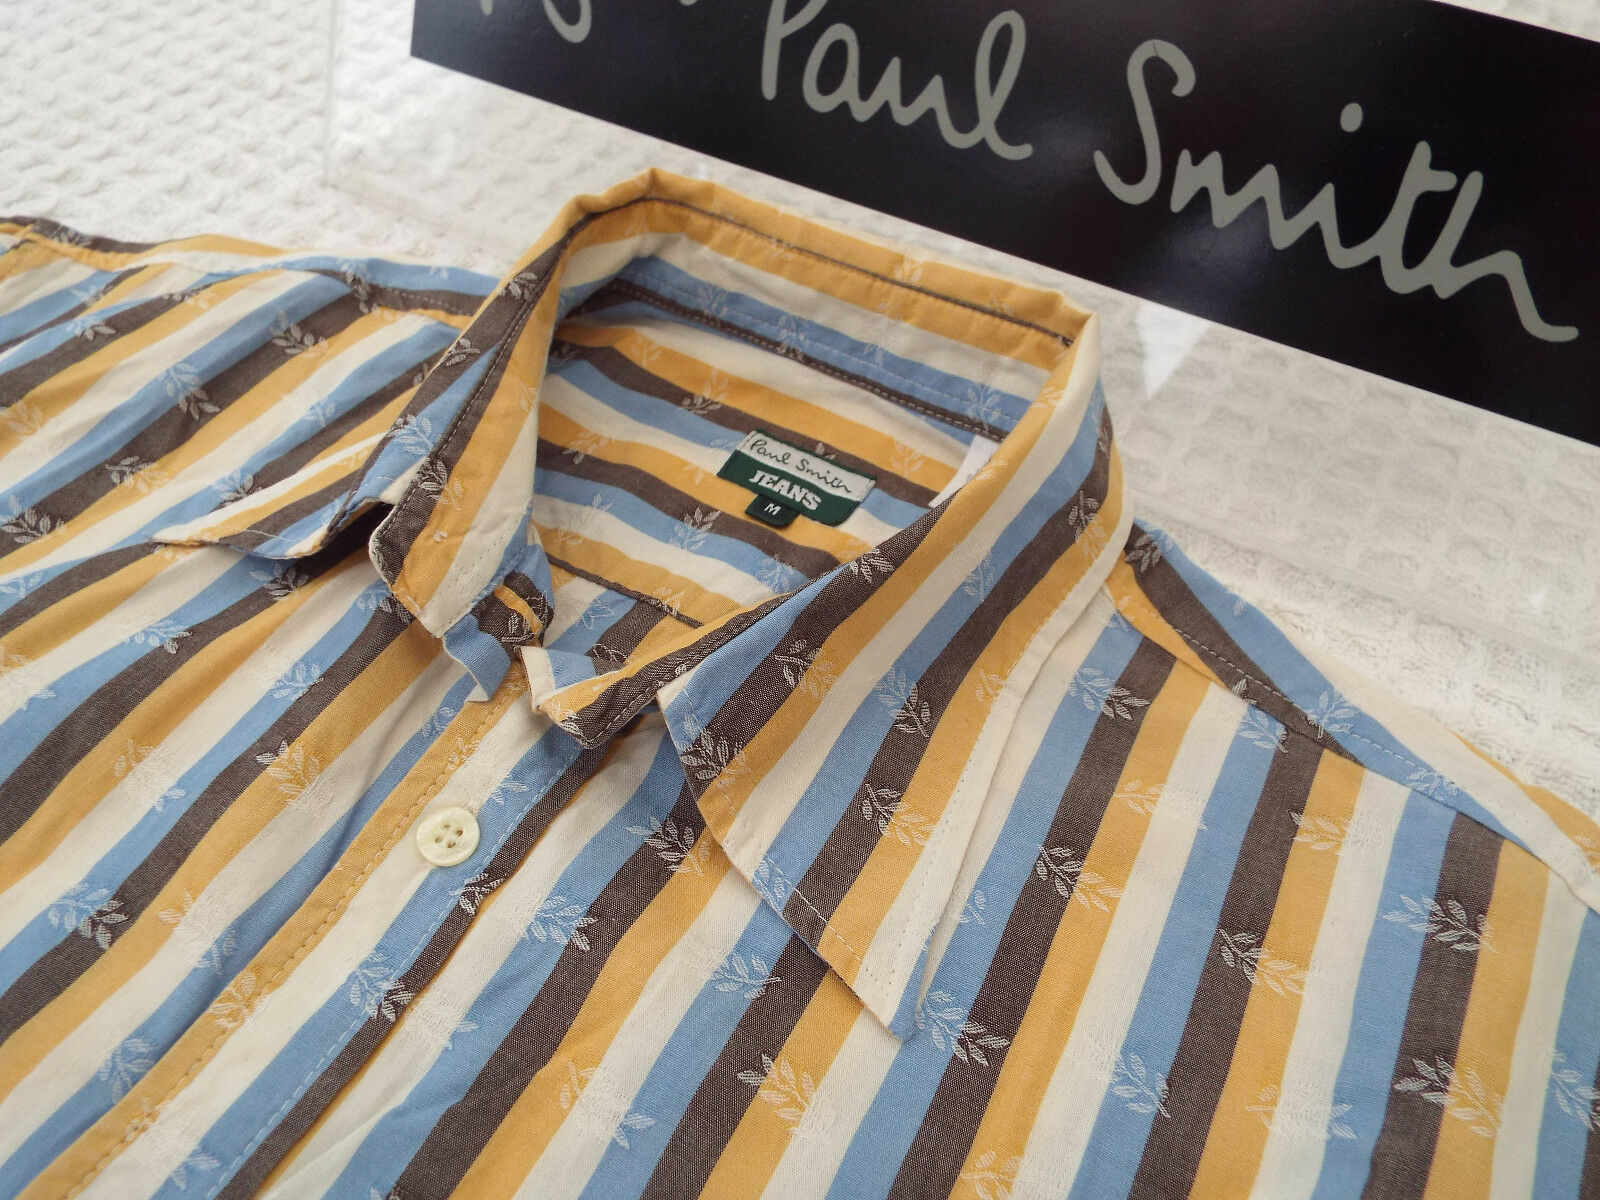 PAUL SMITH Mens Shirt  Size M (CHEST 42 )  RRP + FLORAL AND STRIPES